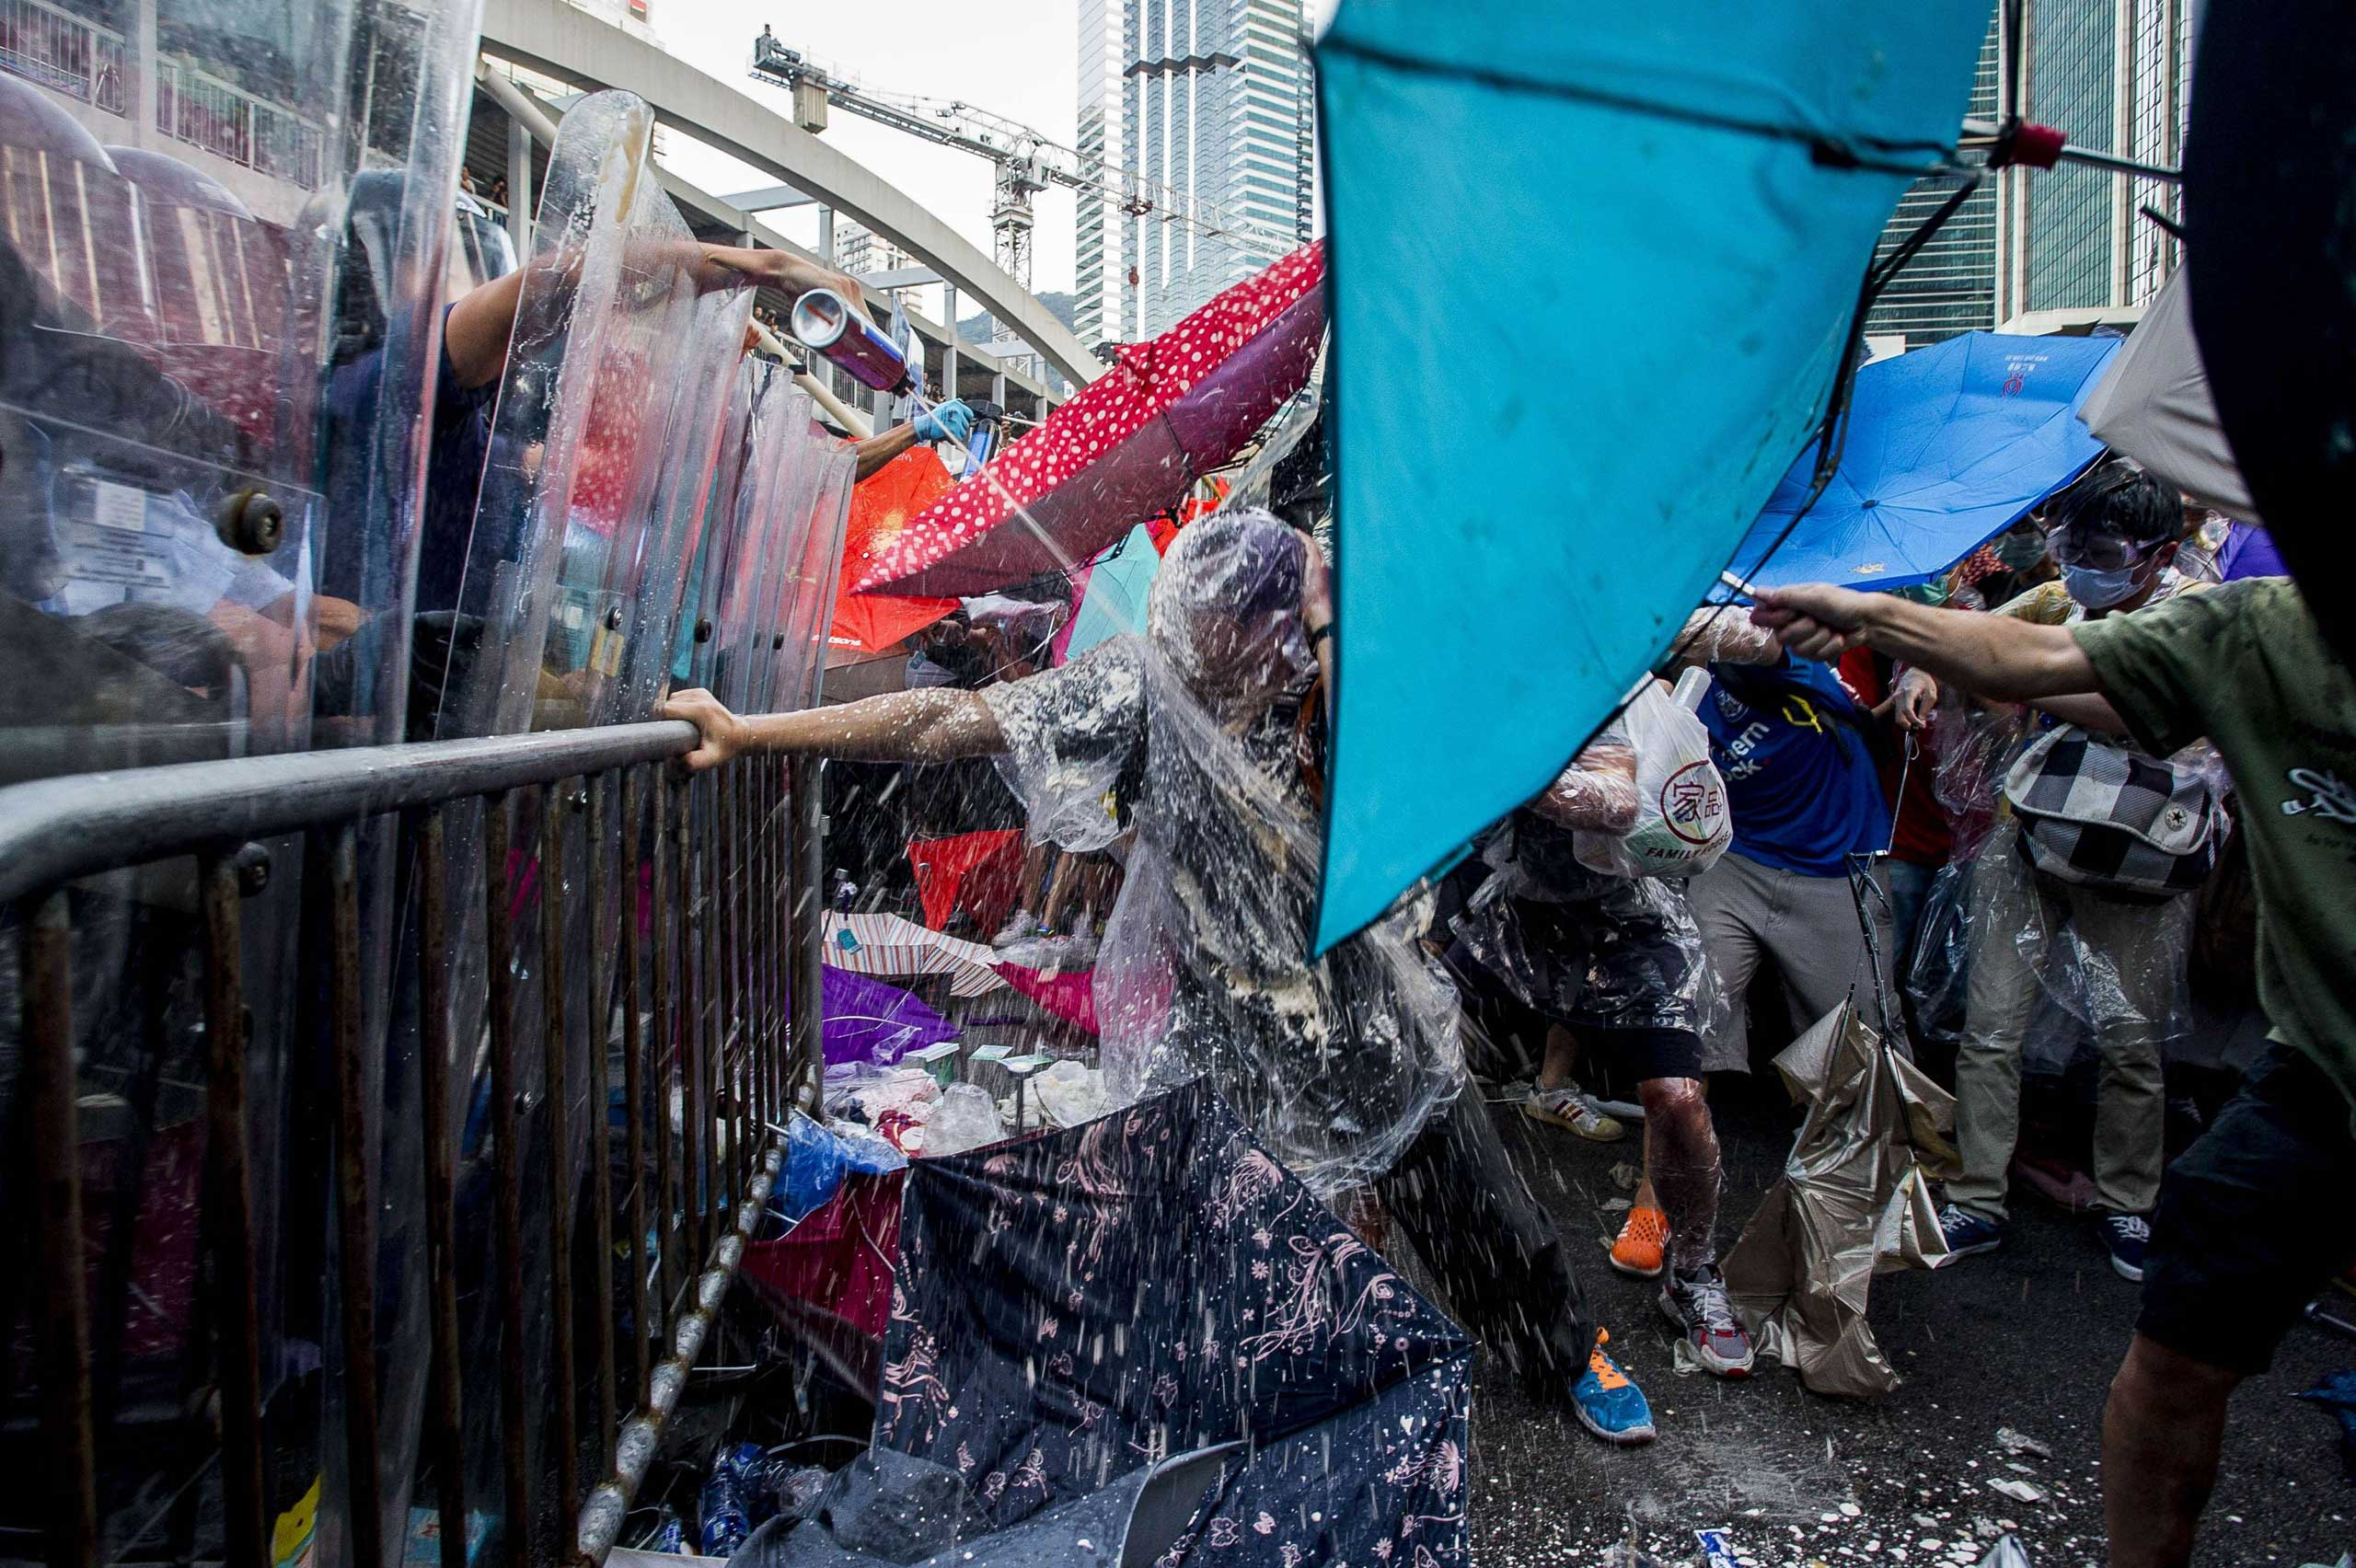 Sept. 28, 2014.                               Pro-democracy demonstrators are sprayed with pepper spray during clashes with police officers during a rally near the Hong Kong government headquarters. Police fired tear gas as tens of thousands of pro-democracy demonstrators brought parts of central Hong Kong to a standstill on September 28, in a dramatic escalation of protests that have gripped the semi-autonomous Chinese city for days.